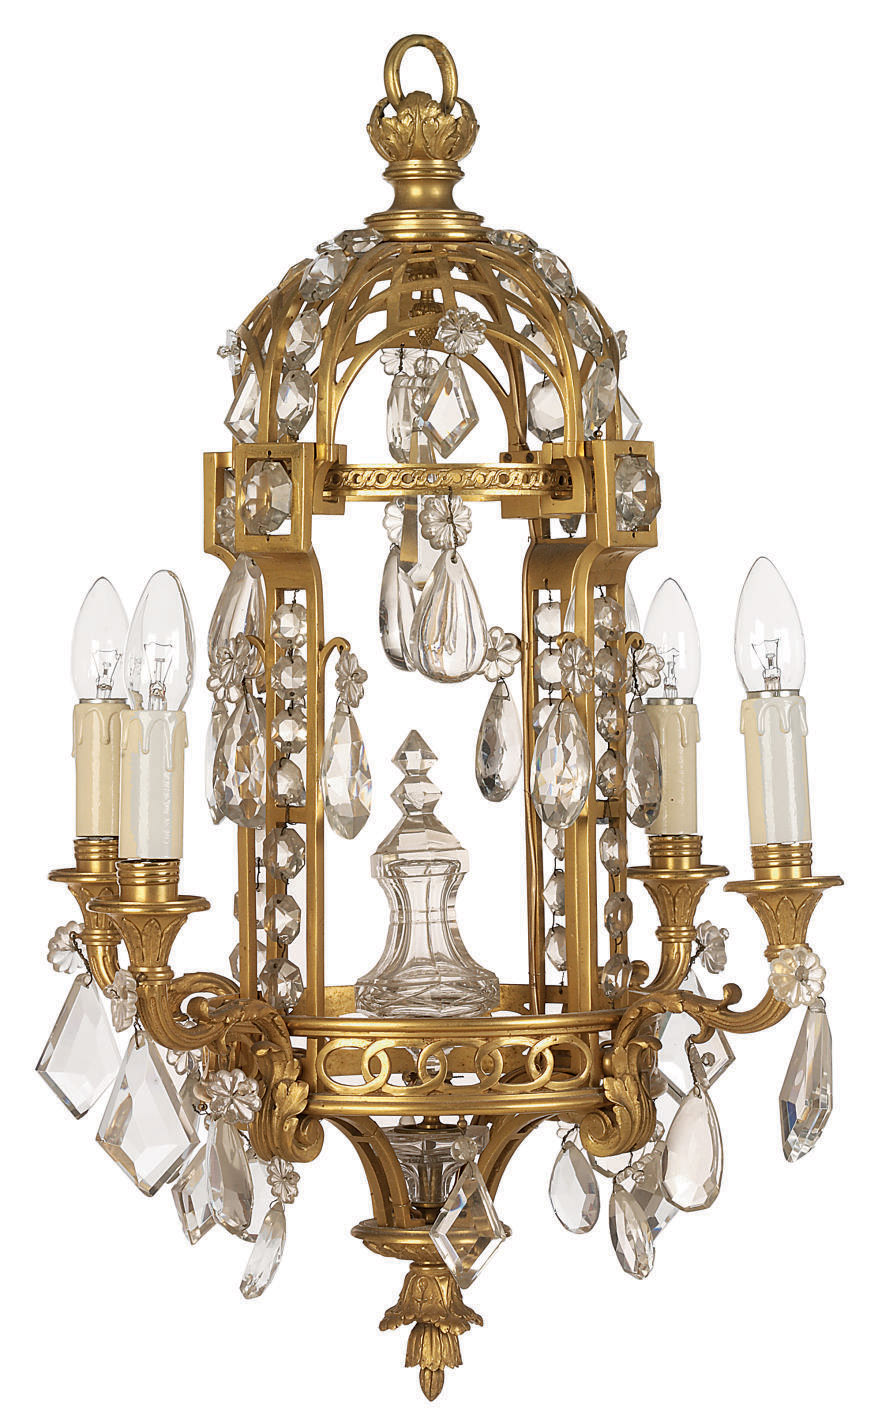 A French Gilt Bronze And Glass Lustre Chandelier Of Louis Xv Style